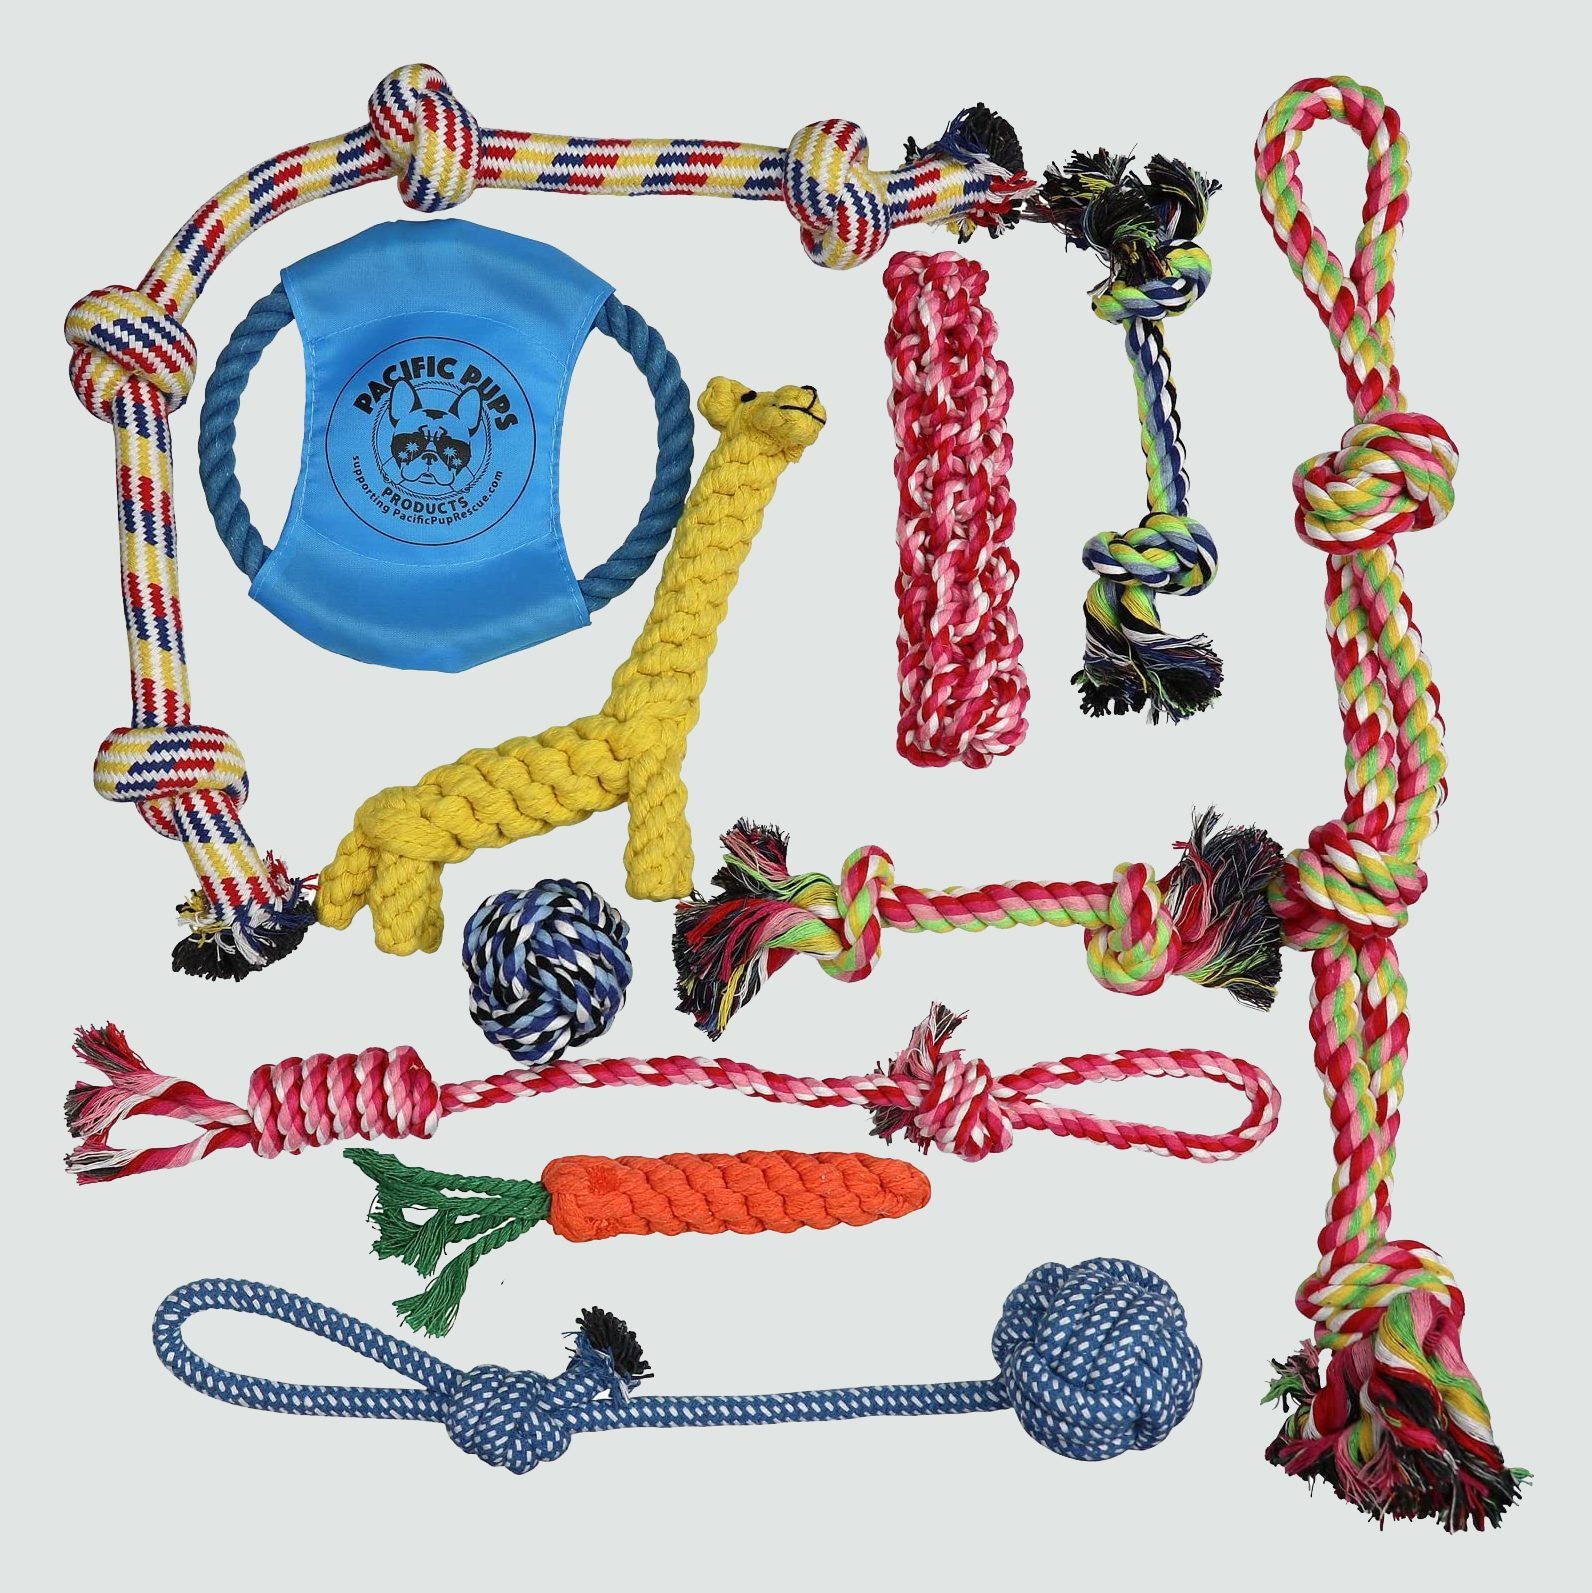 Pacific Pups Rescue Assorted Rope Toys